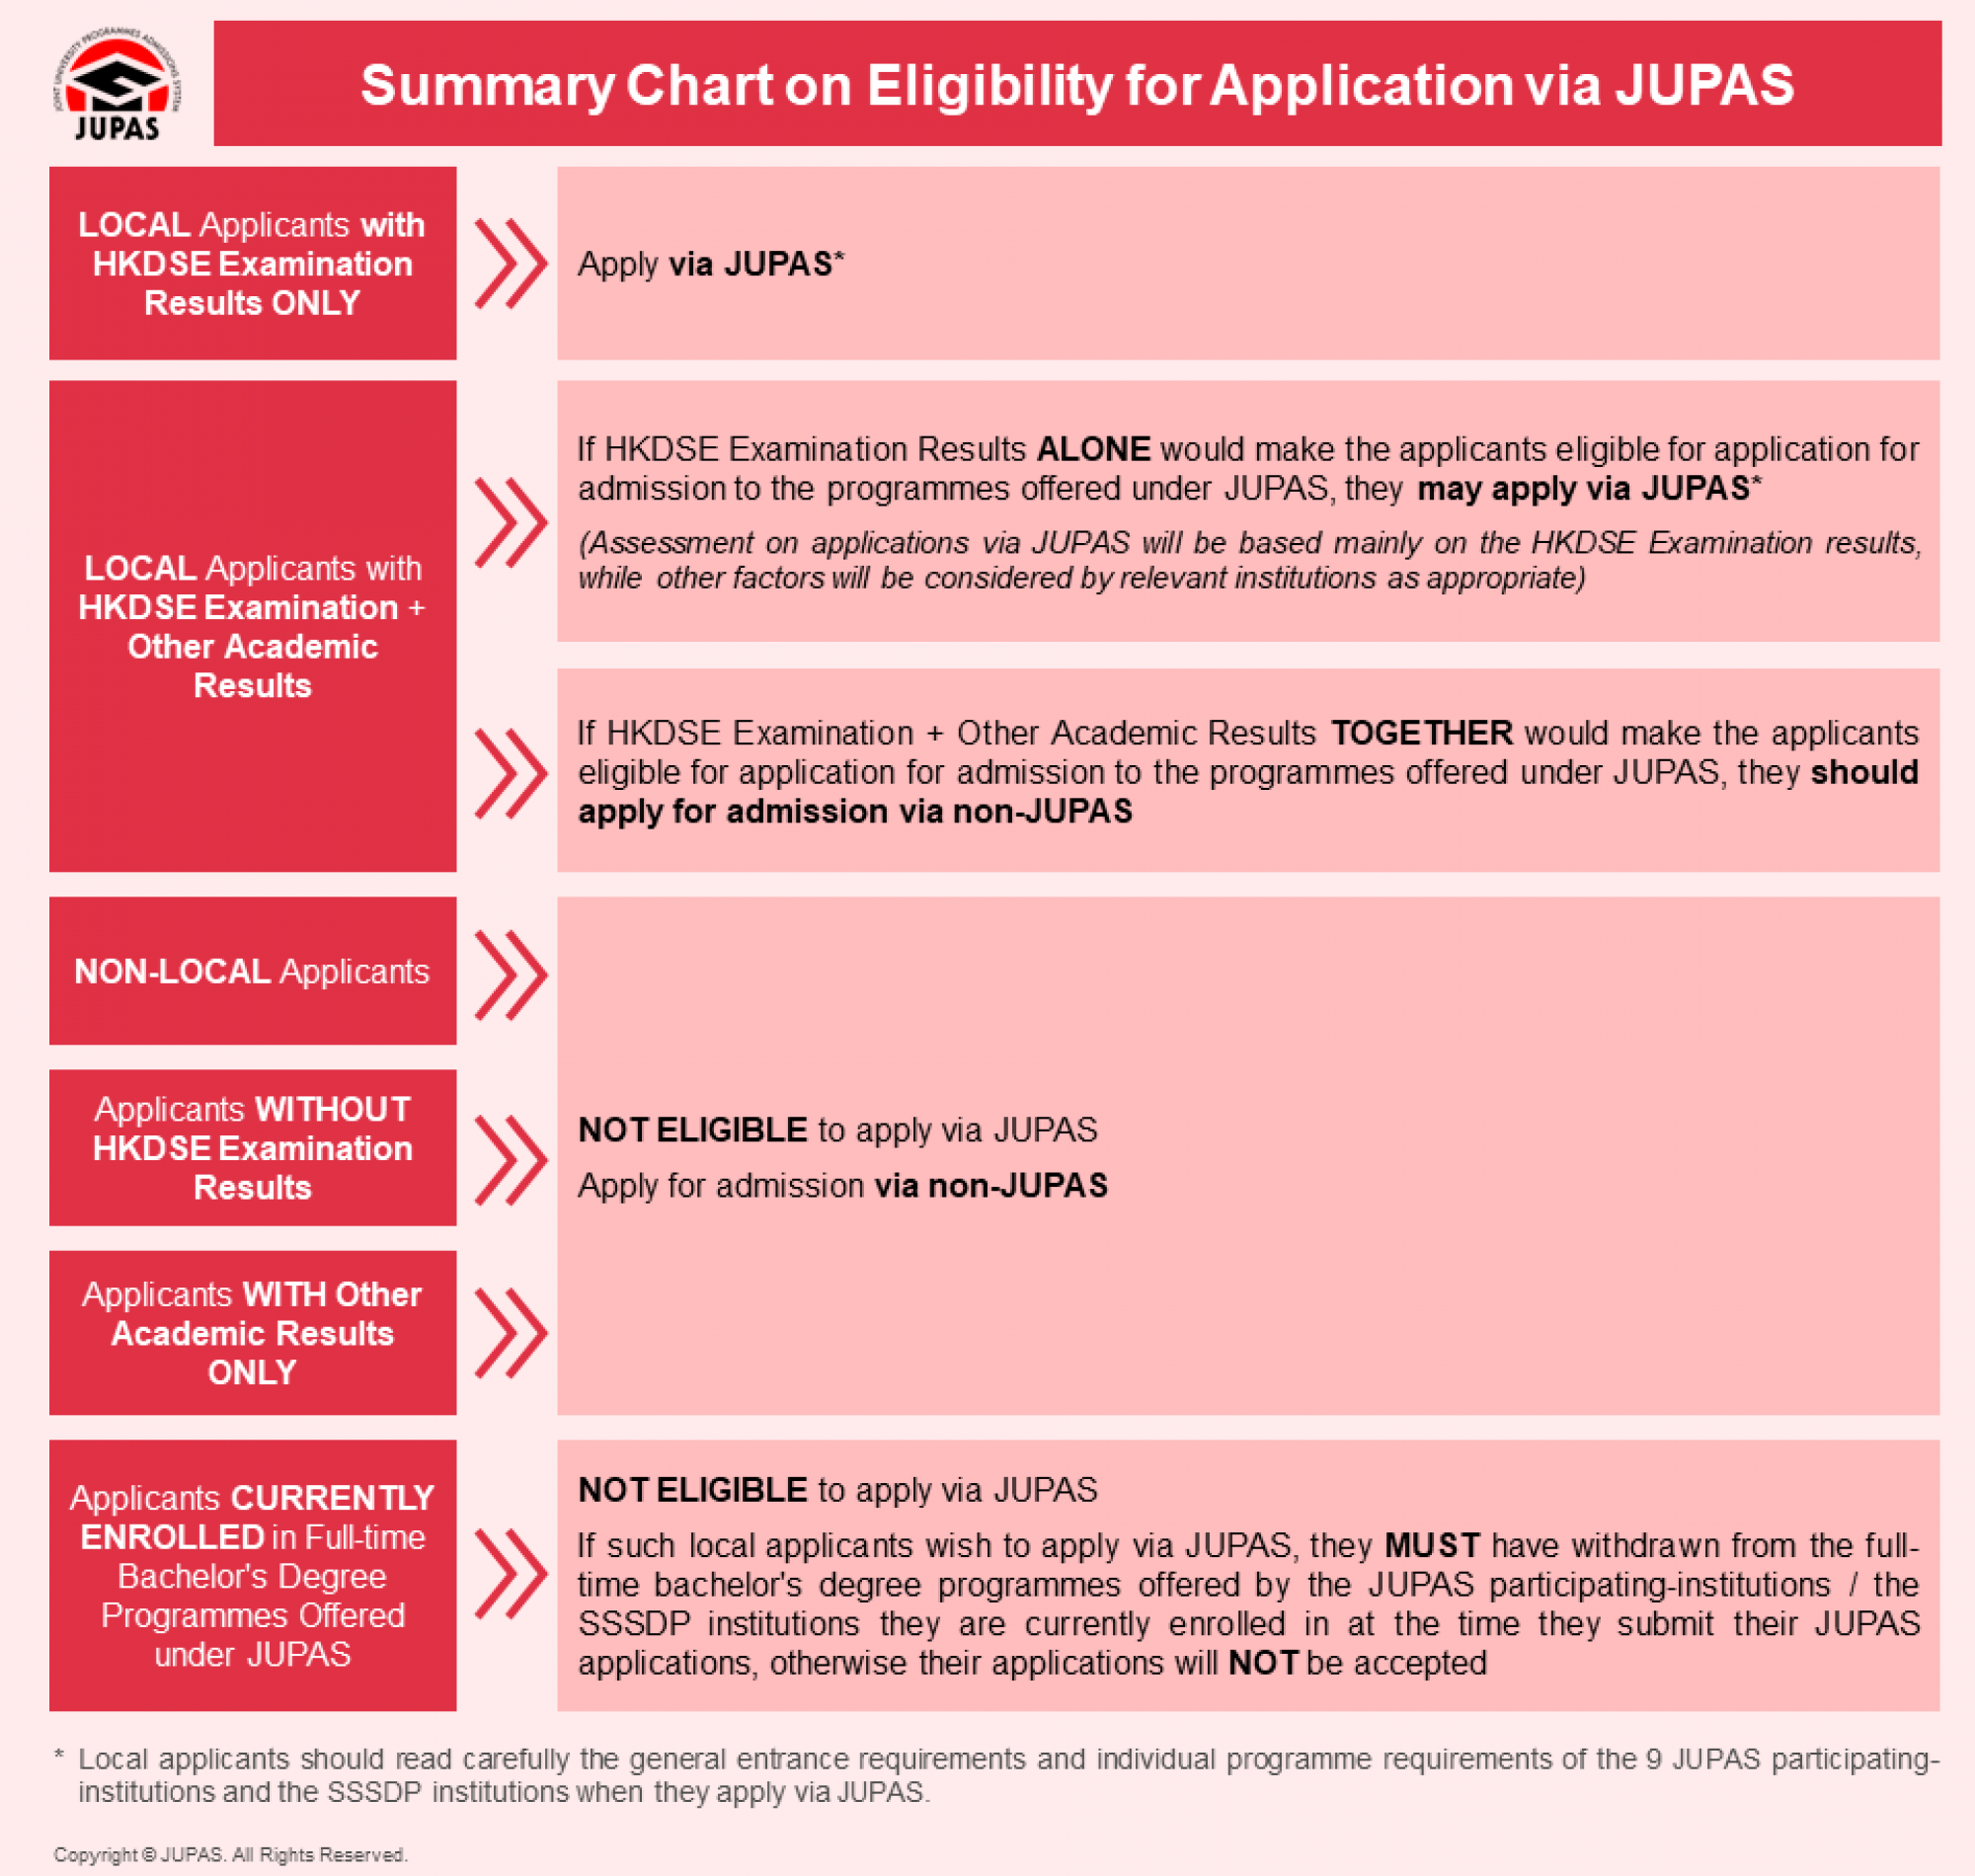 Summary on Eligibility for Application via JUPAS